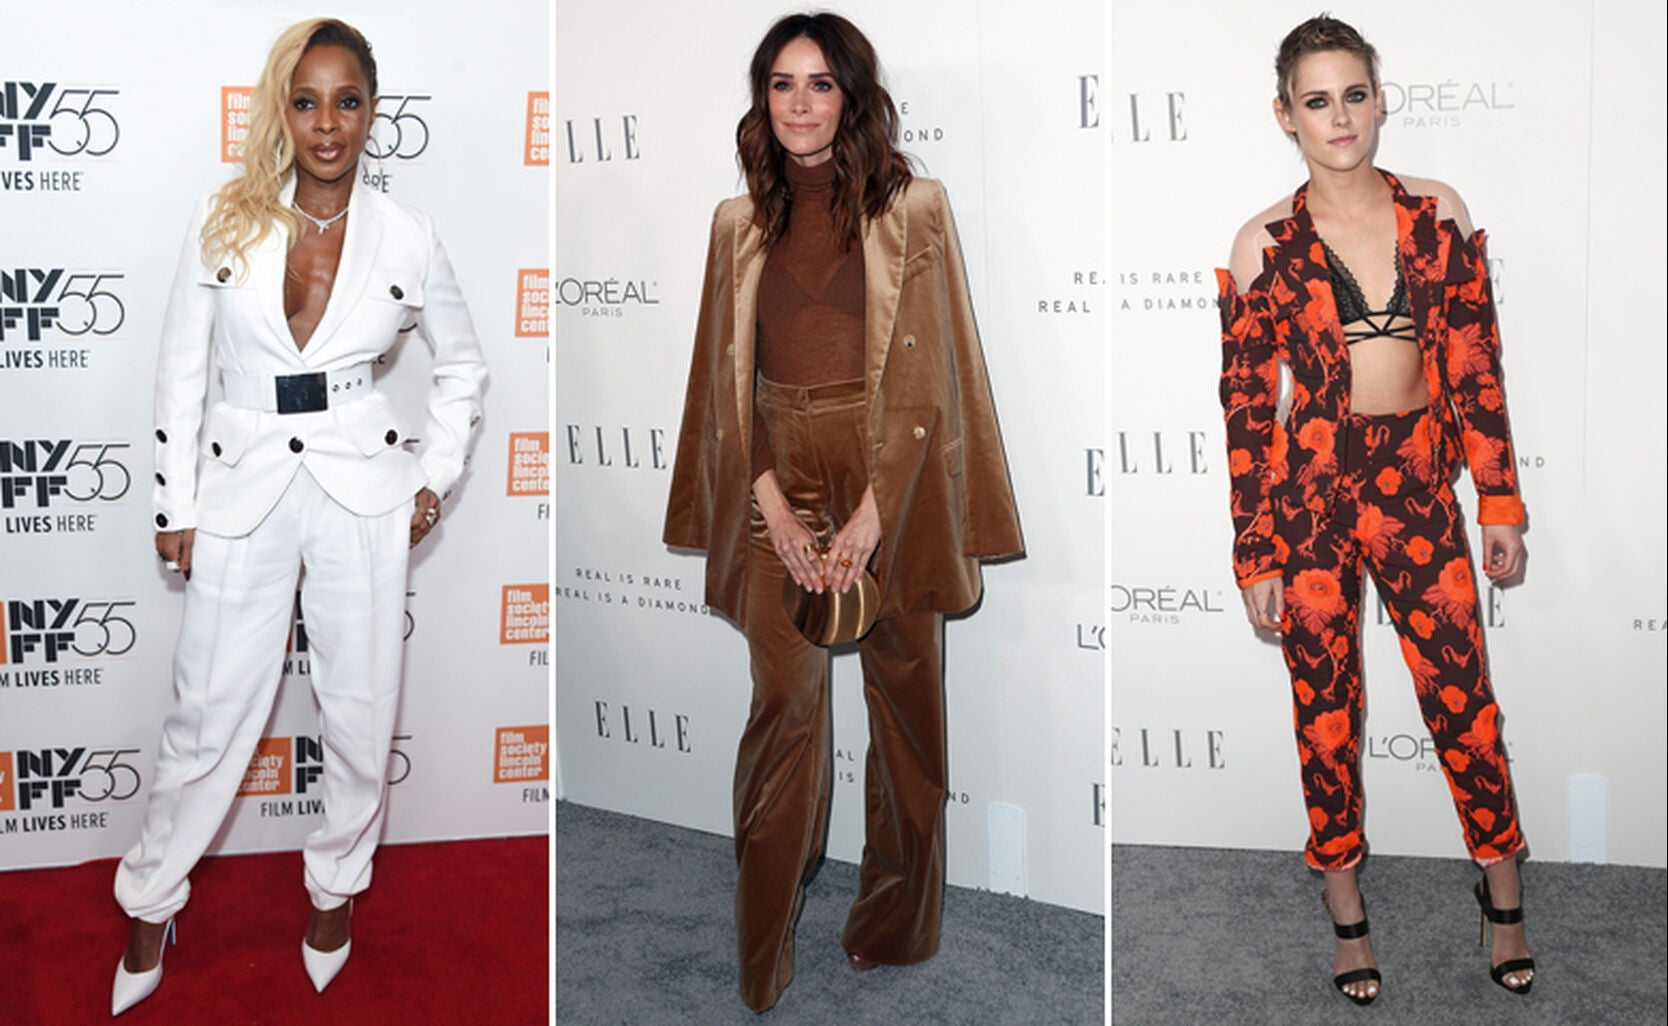 Mary J. Blige, Abigail Spencer and Kristen Stewart